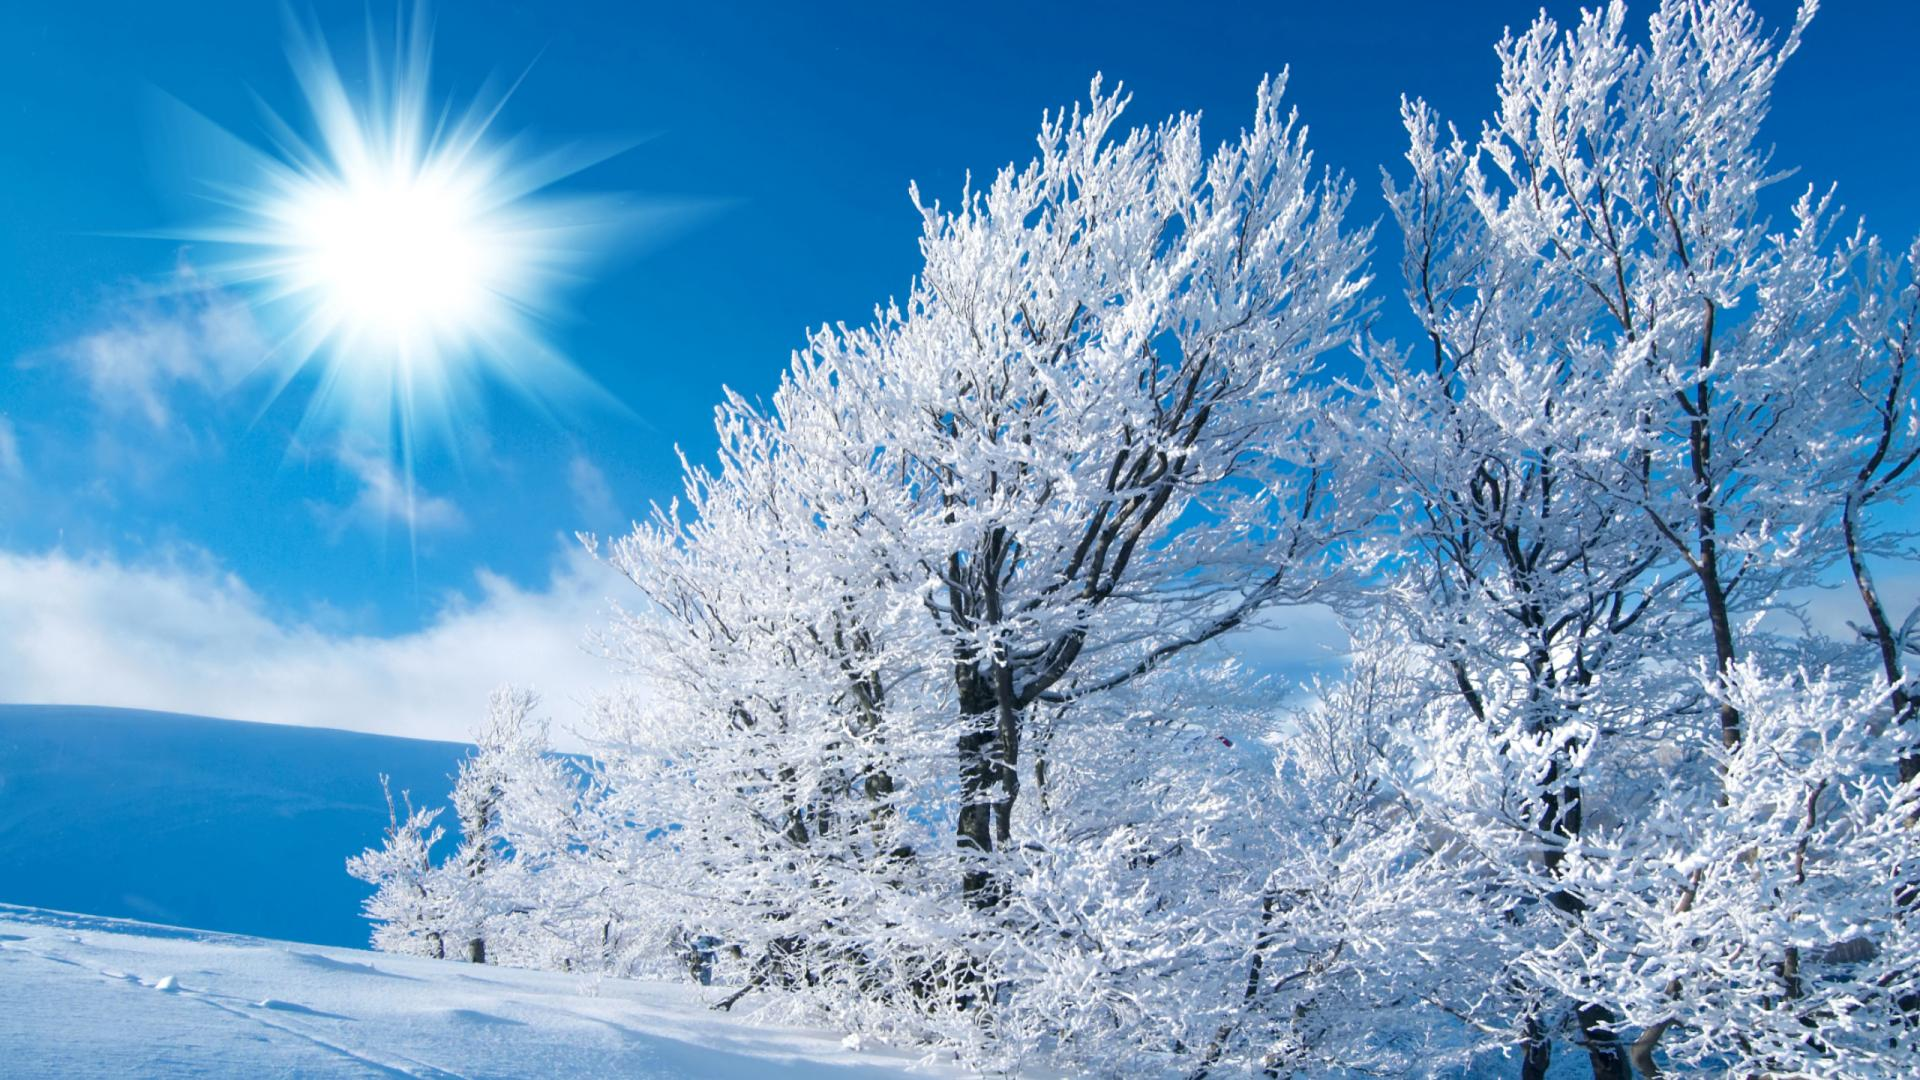 URL httpwwwsmscscomphotofree winter desktop wallpapershtml 1920x1080